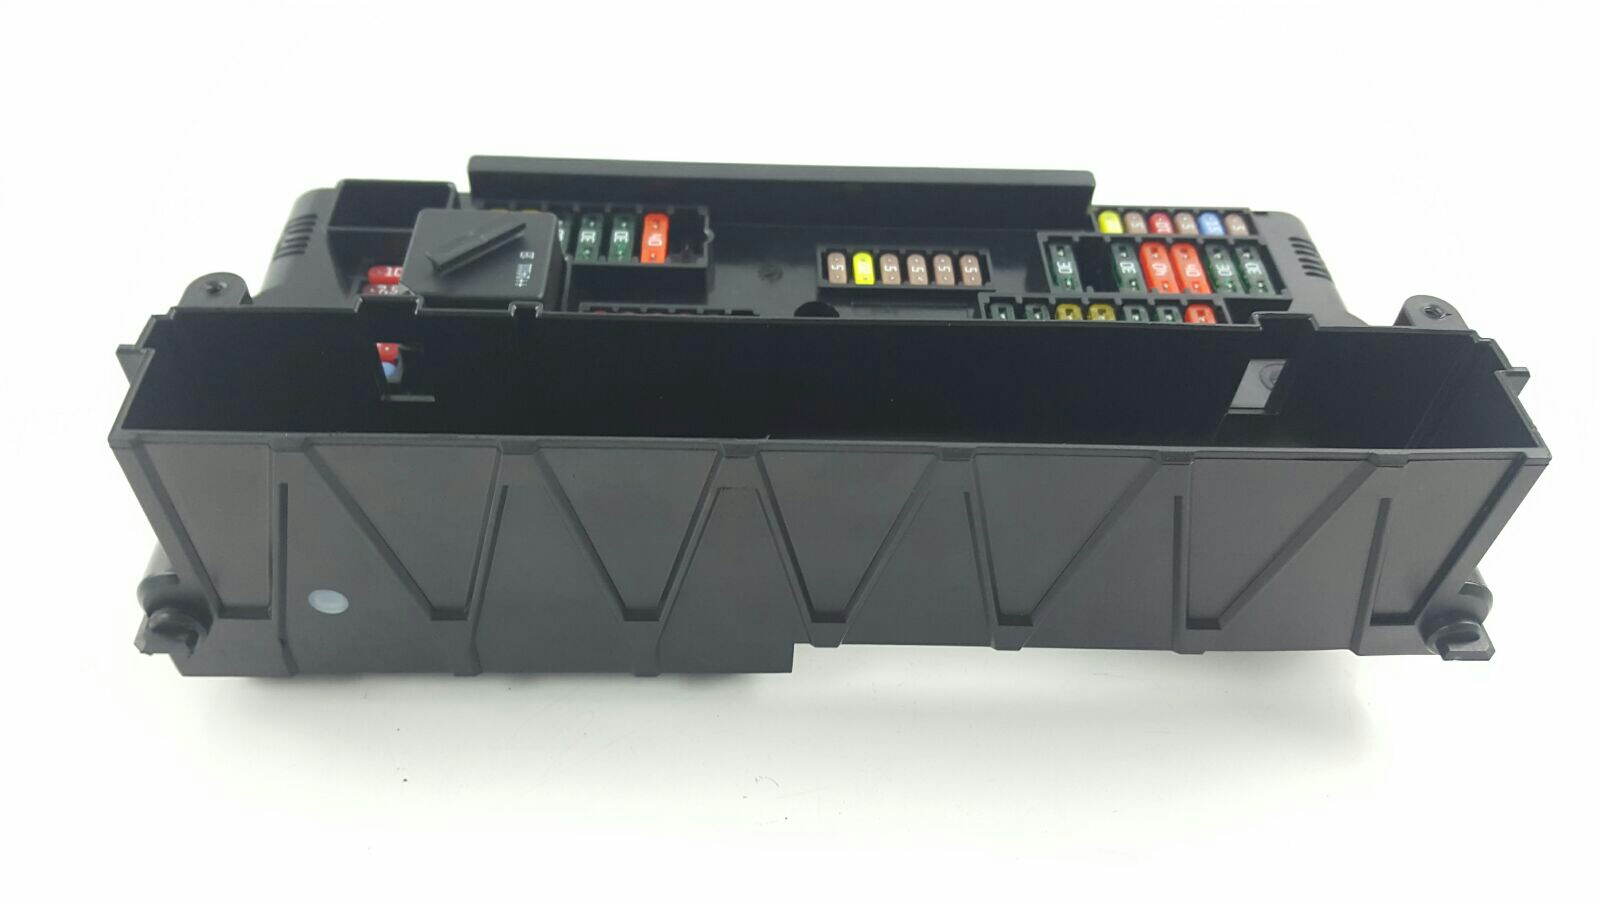 bmw 5 series 2013 to 2016 fuse box diesel automatic for sale rh  scbvehicledismantlers co uk BMW X3 Fuse Box Diagram BMW X3 Fuse Box Diagram